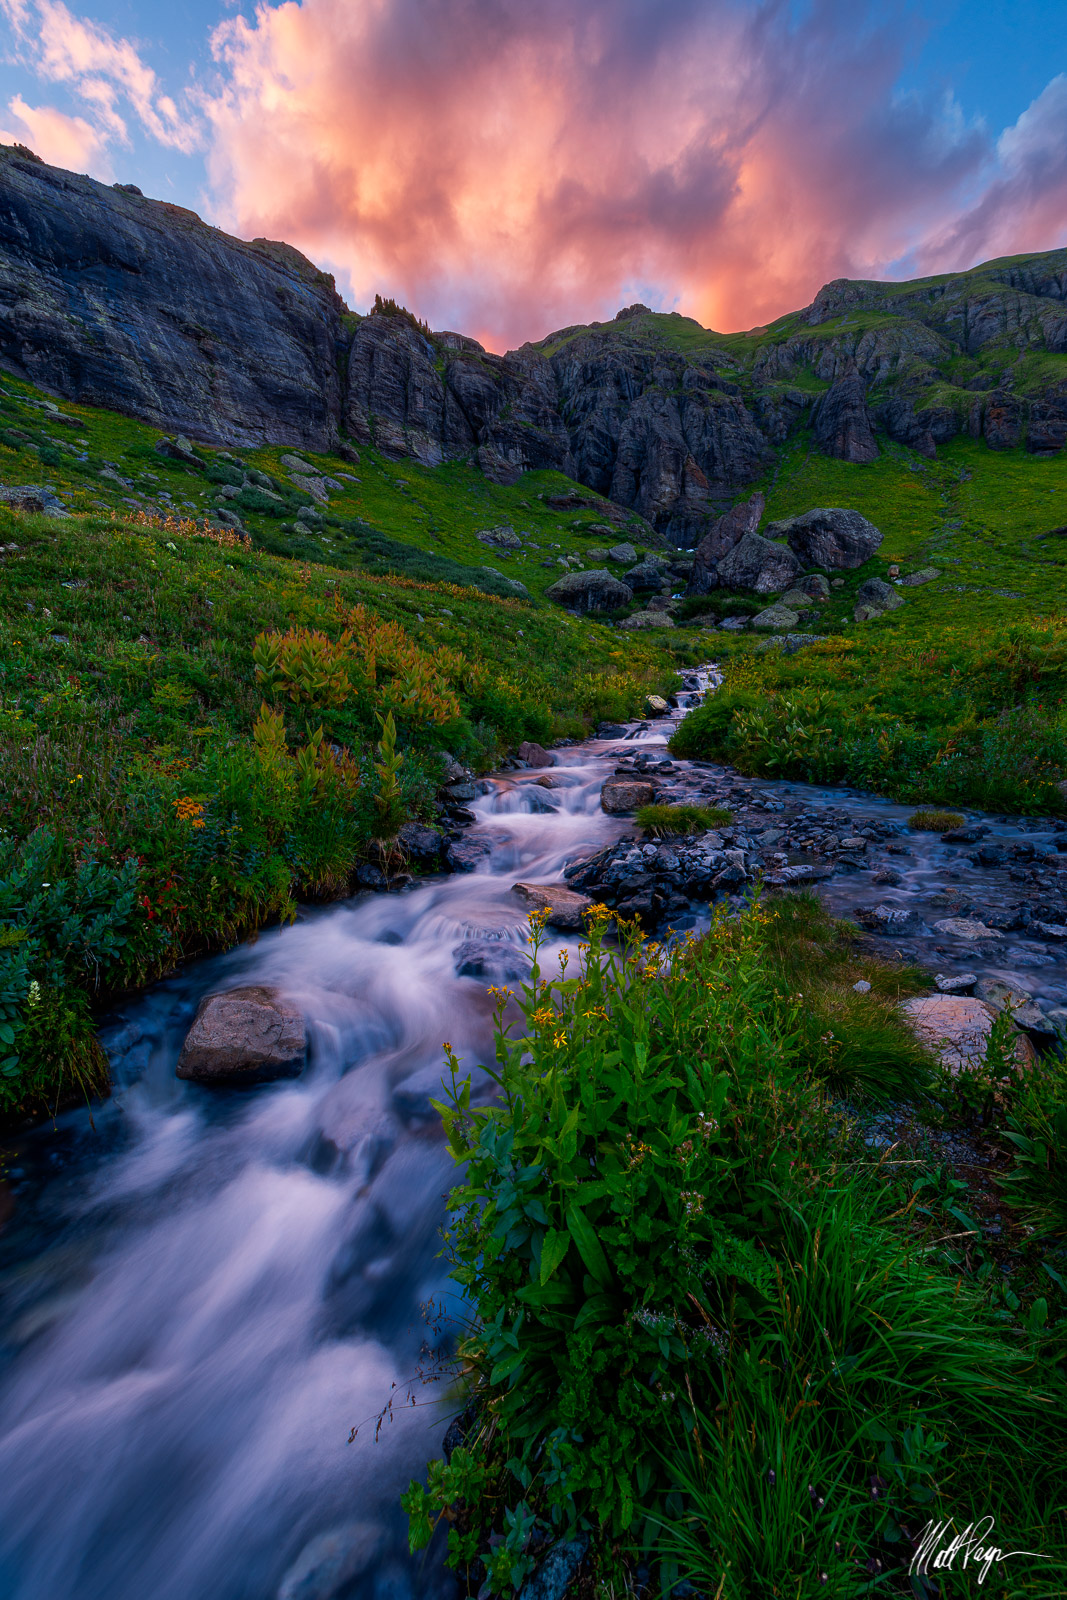 Clouds, Colorado, Ice Lake Basin, Landscape, Mountain, Silverton, Stream, Sunset, Water, light, wildflowers, photo